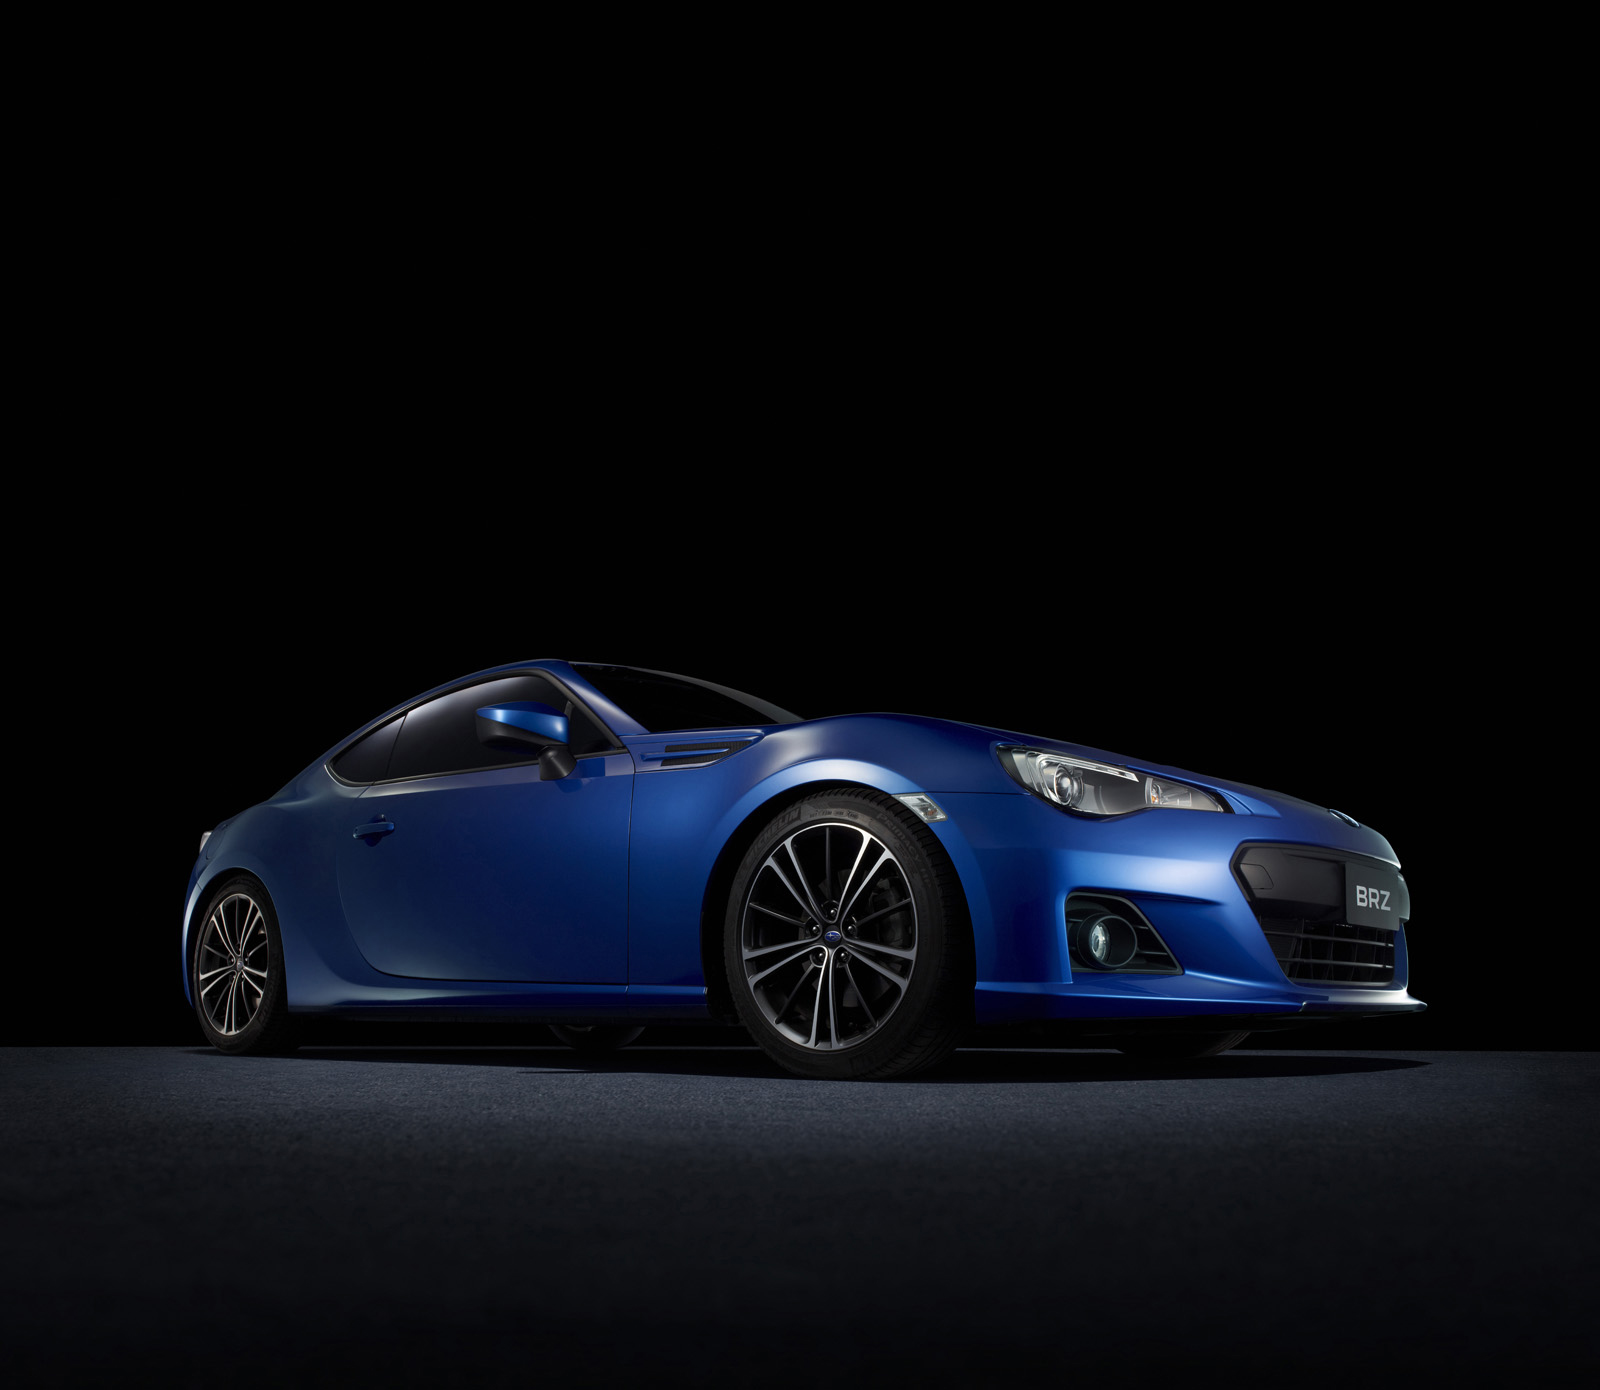 Subaru BRZ High Resolution Wallpapers in World Rally Blue